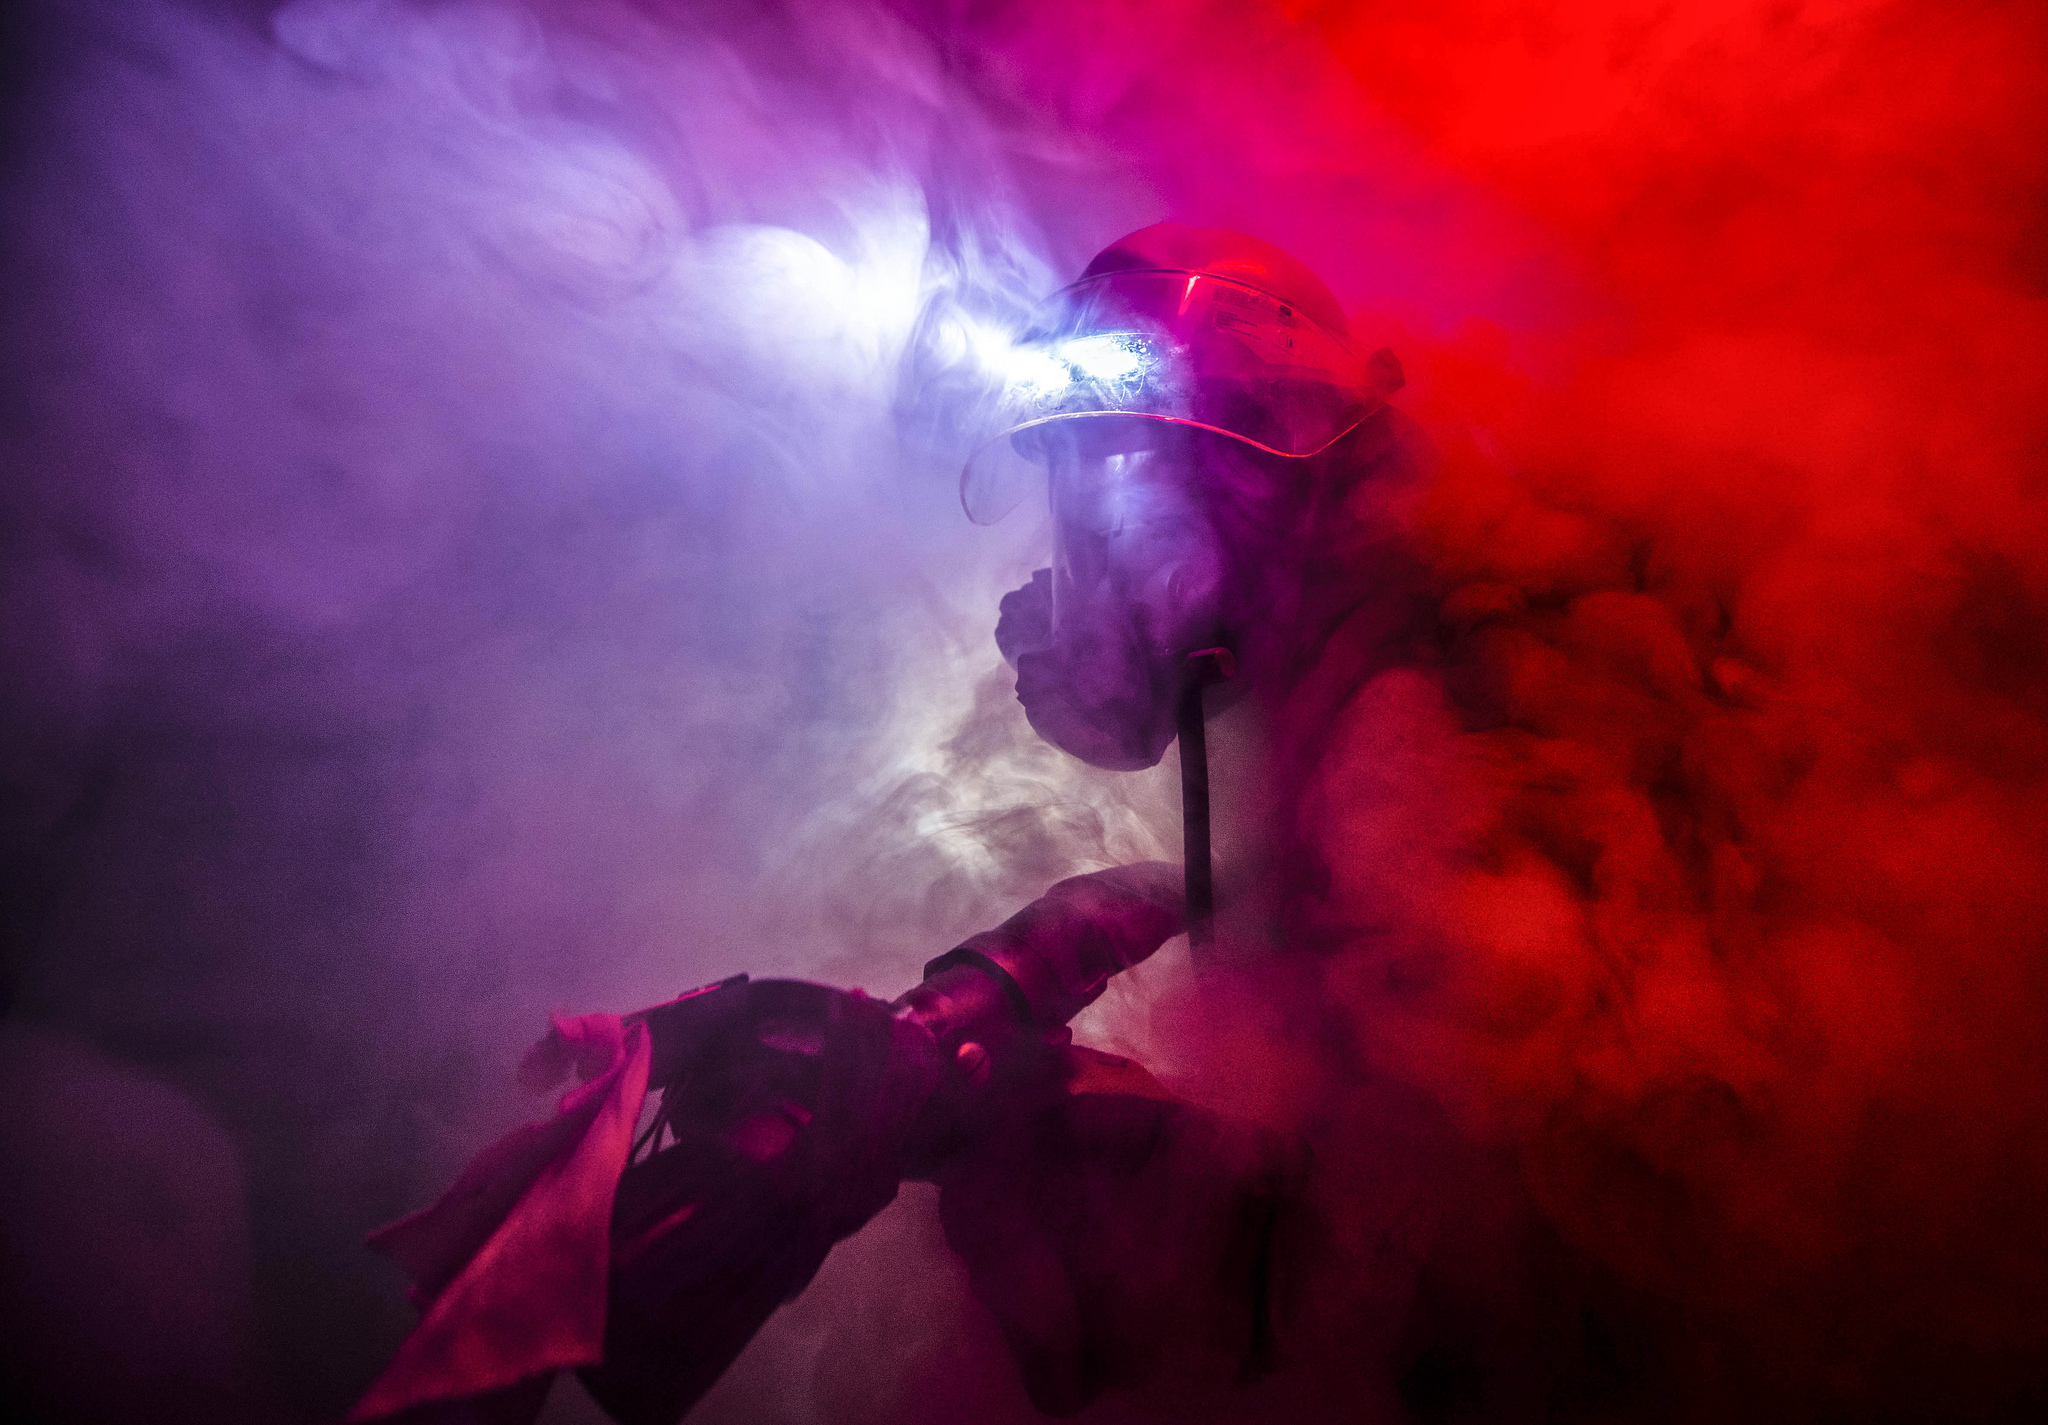 Damage Controlman Fireman James Moore fights a simulated fire during a drill aboard the Arleigh Burke-class guided-missile destroyer USS Porter (DDG 78) in the North Sea, Feb. 4, 2019. (Mass Communication Specialist 2nd Class James R. Turner/Navy)